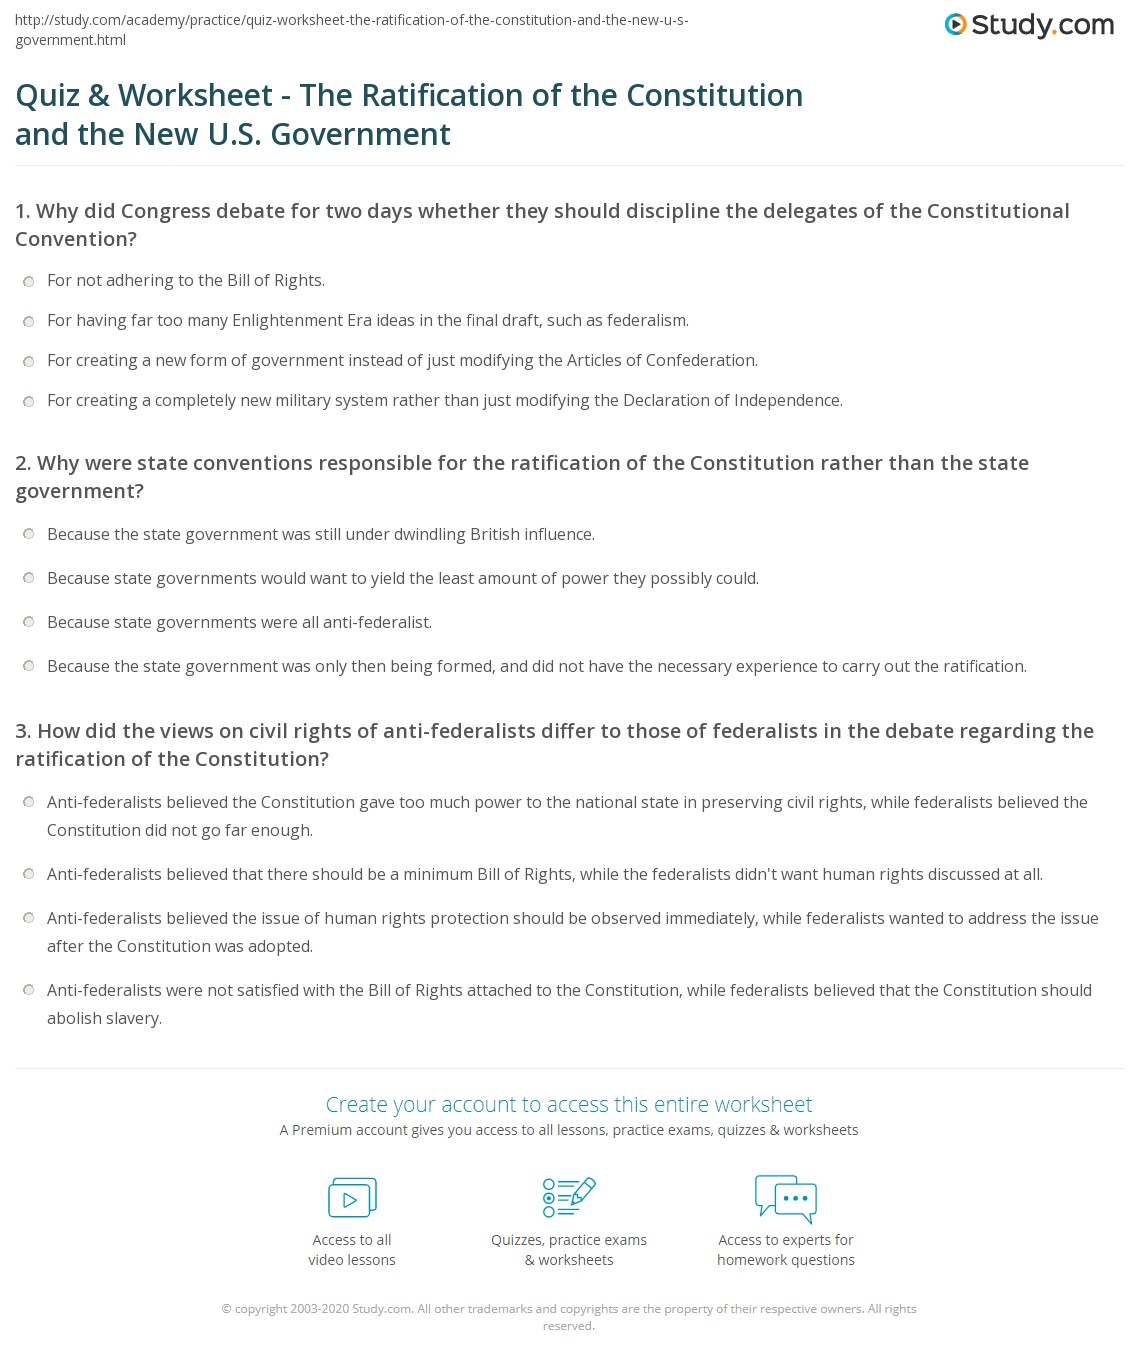 Printables Ratifying The Constitution Worksheet quiz worksheet the ratification of constitution and print new u s government worksheet